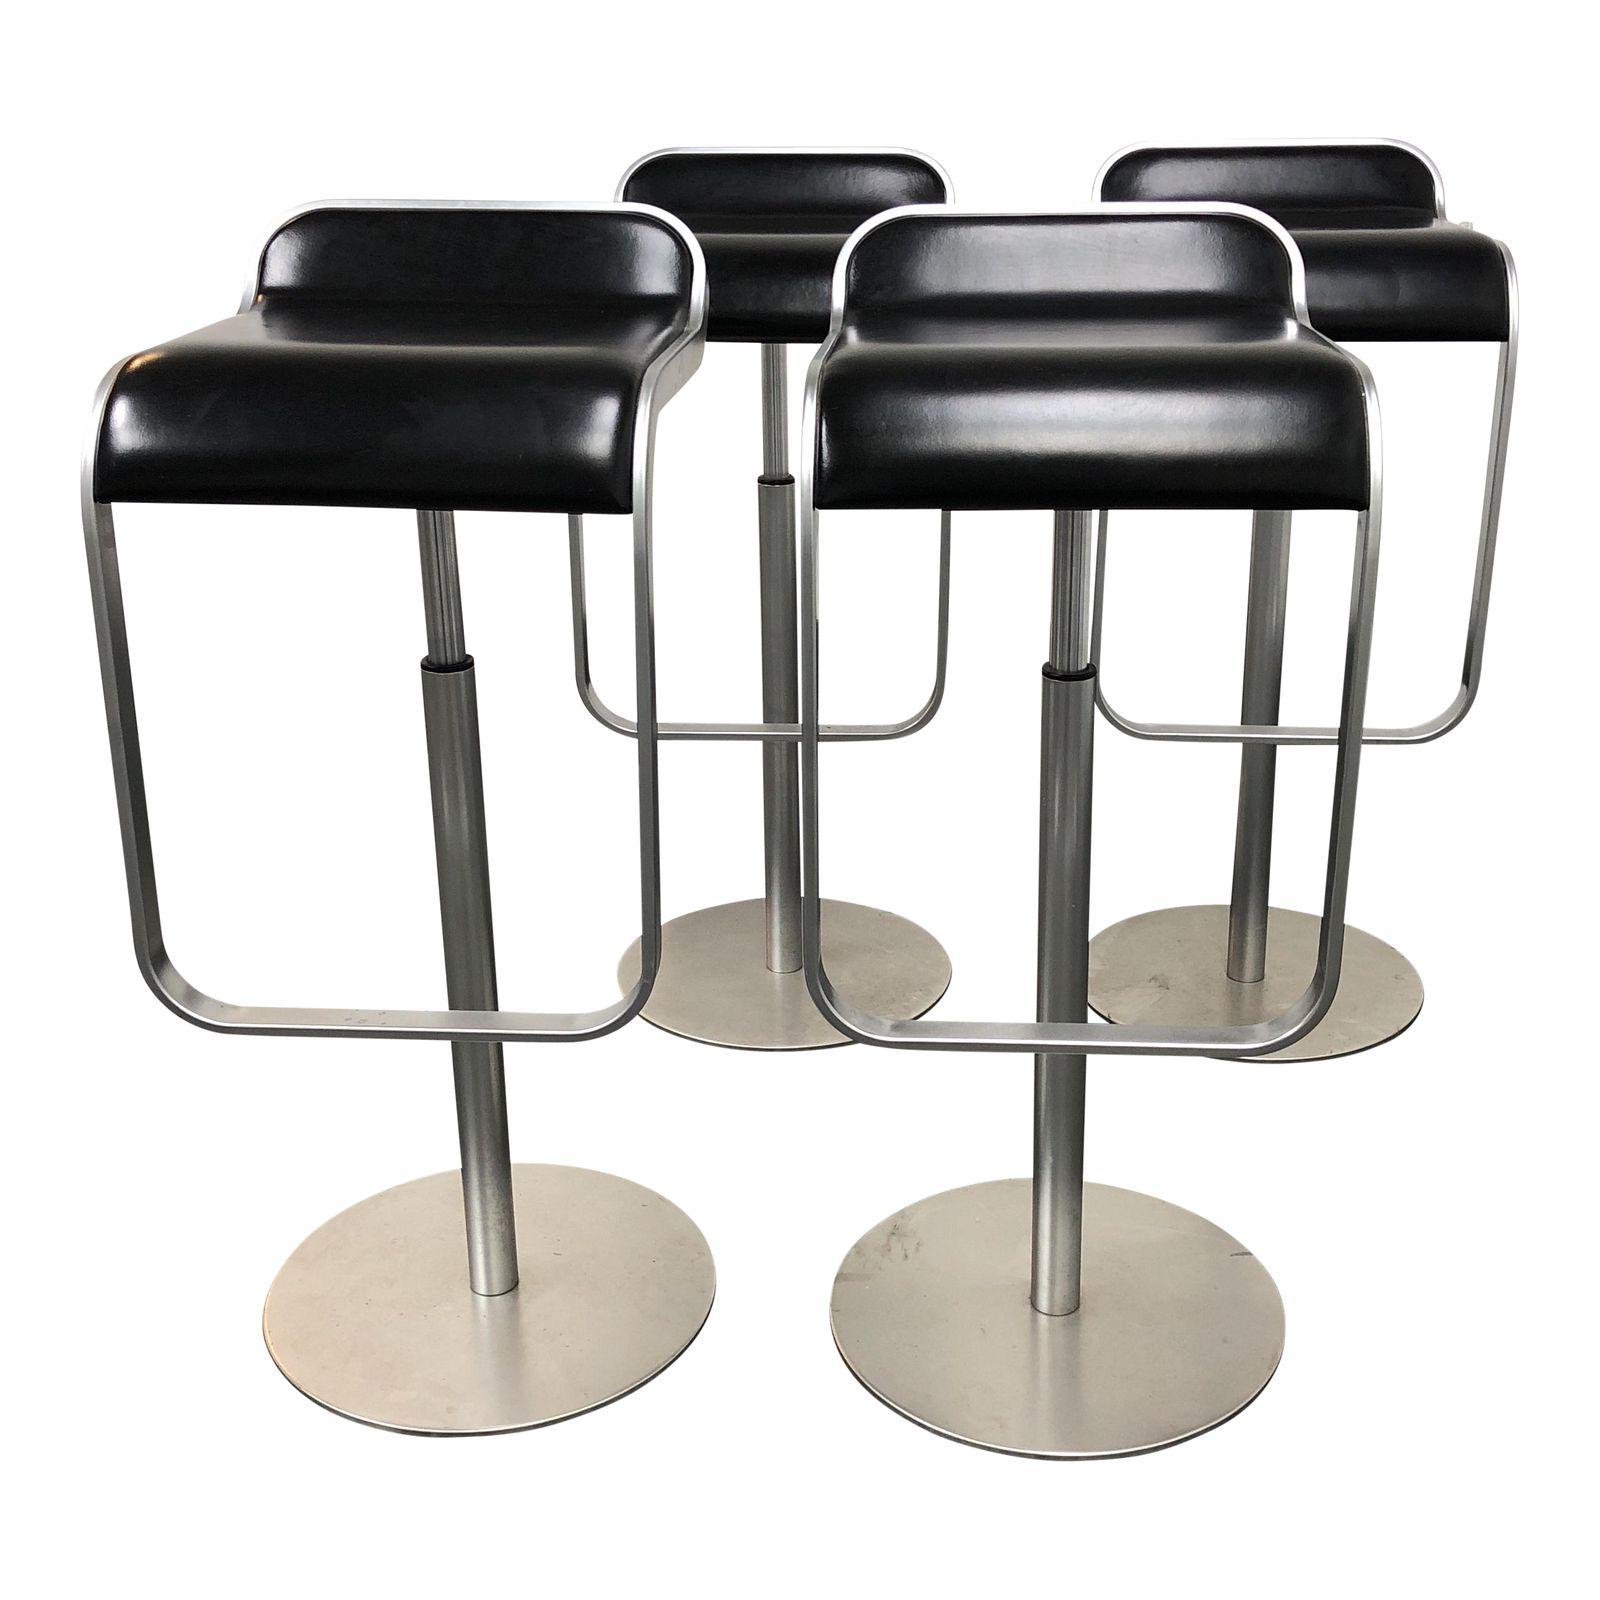 La Palma Barhocker Lem Amazing Miunn Bar Stool By Lapalma